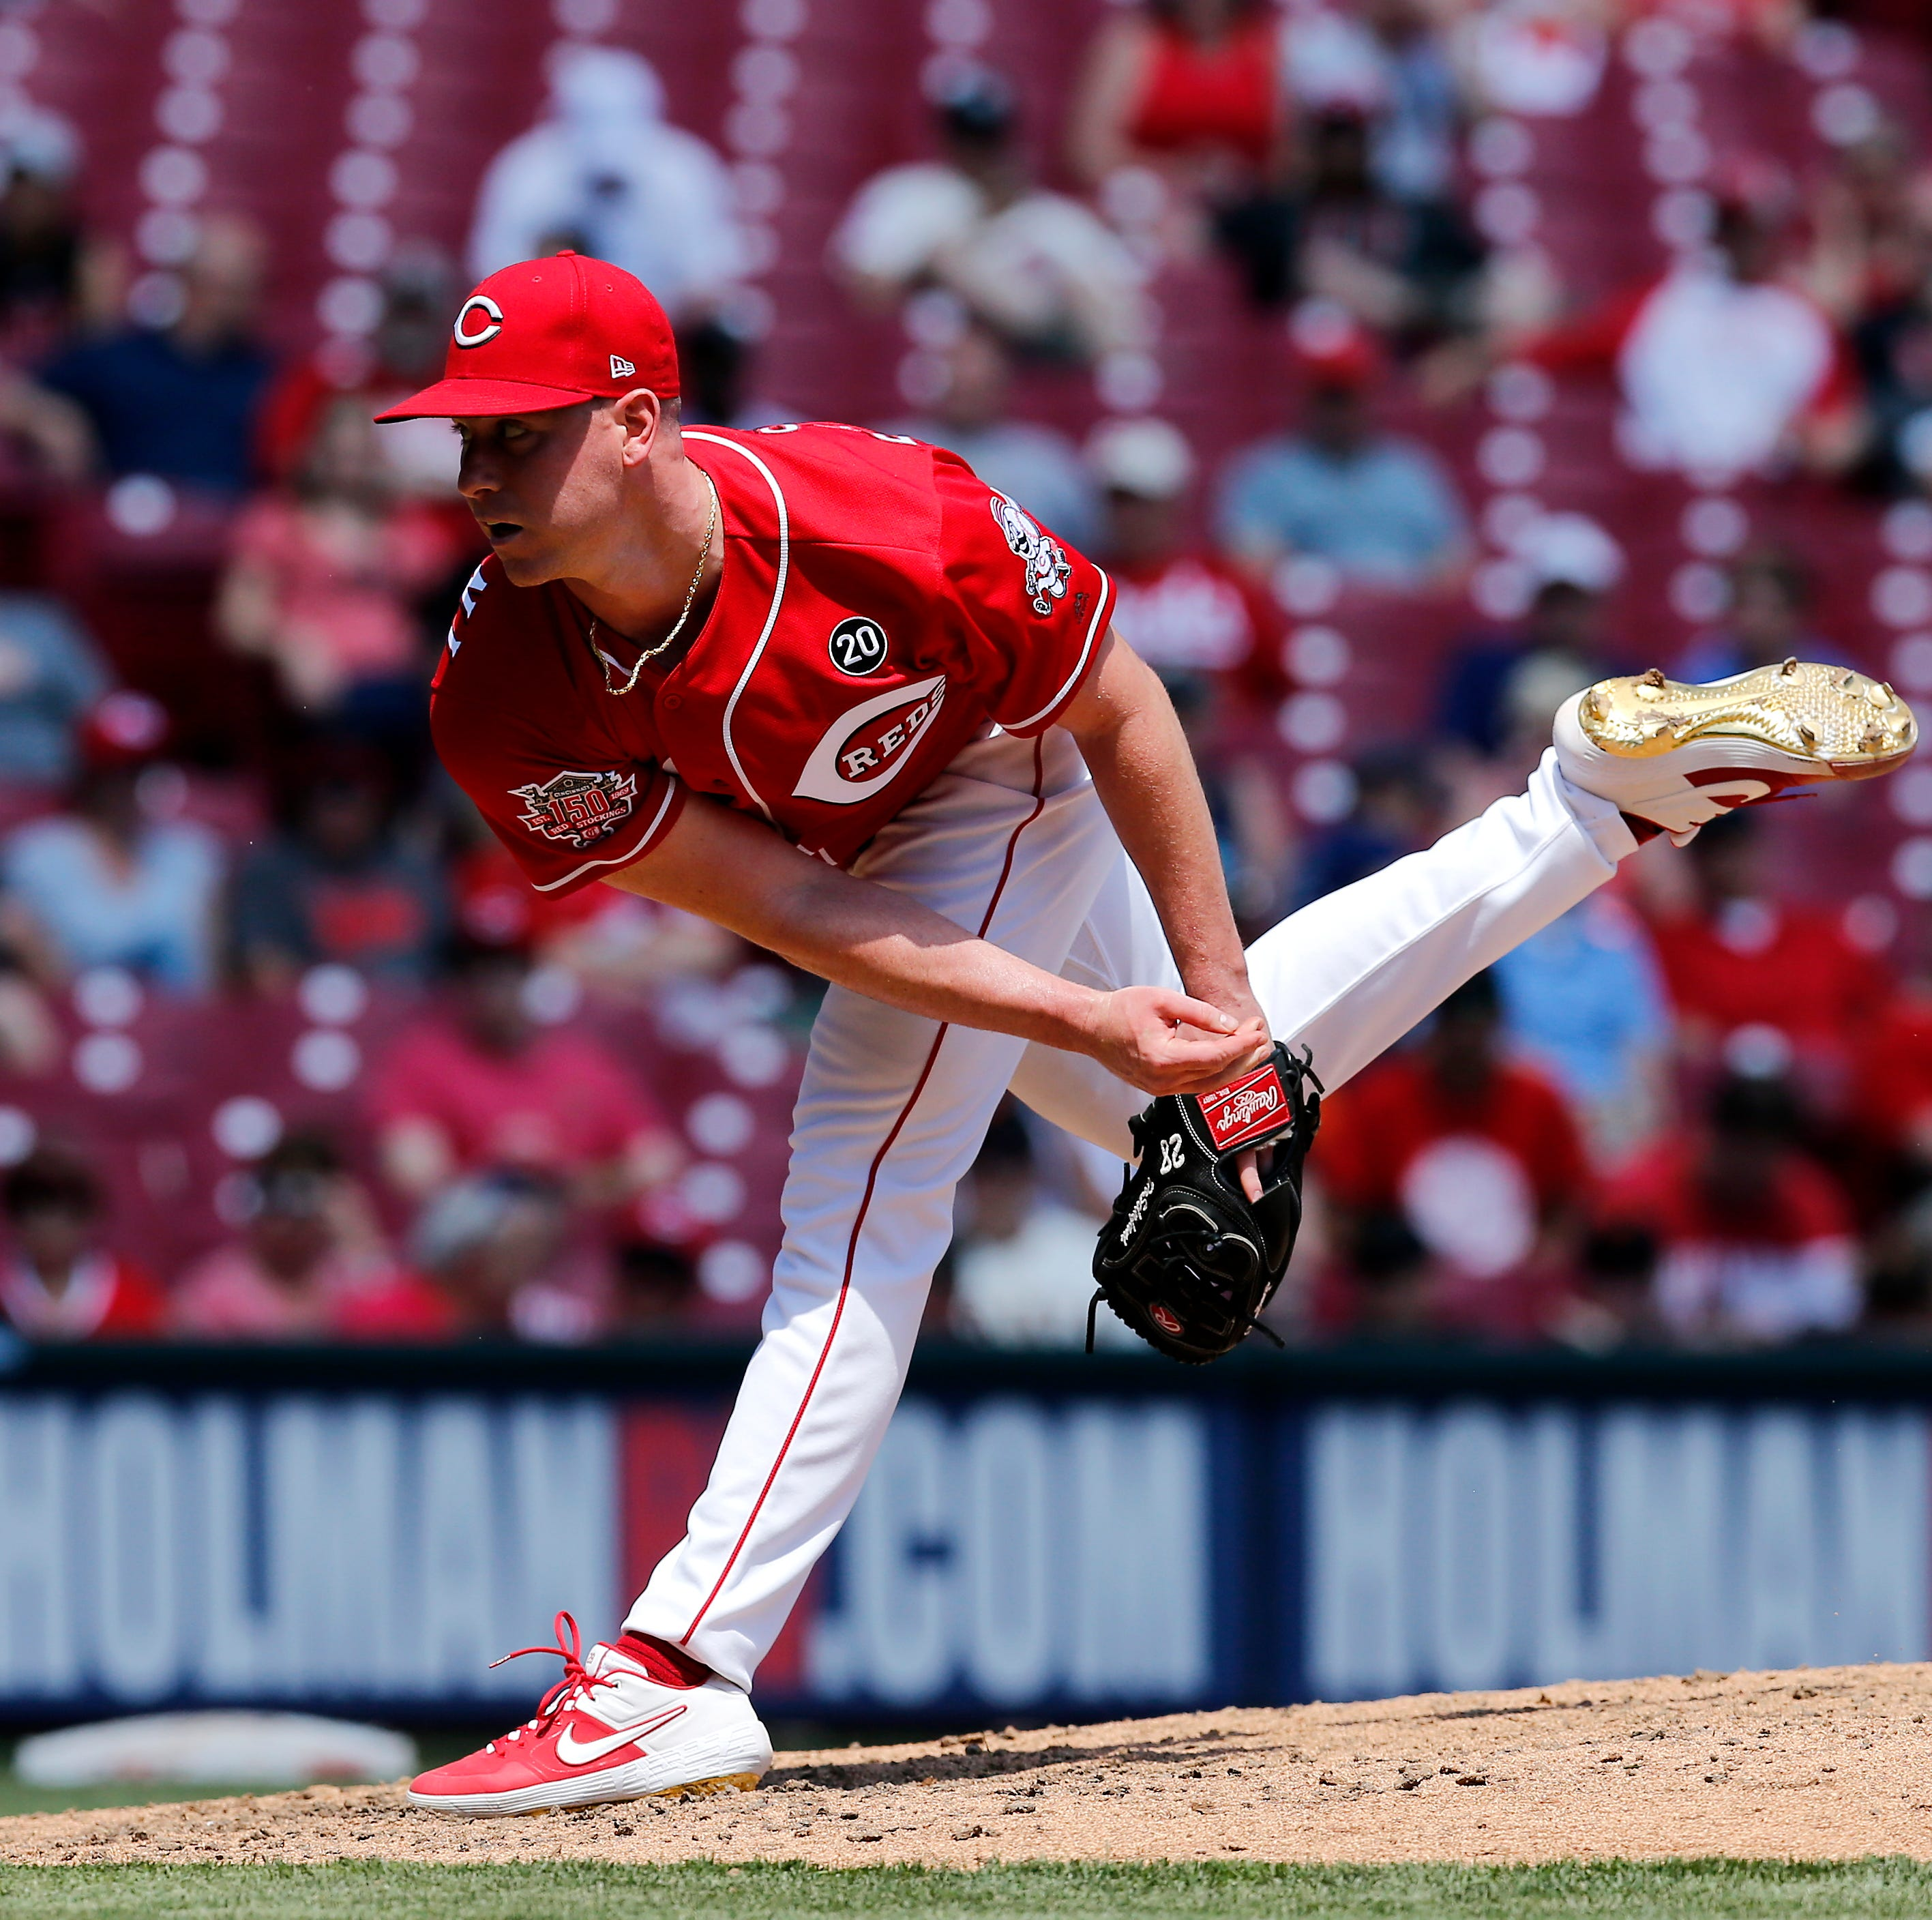 Fastballs up in the strike zone turning into a big weapon for Cincinnati Reds pitchers